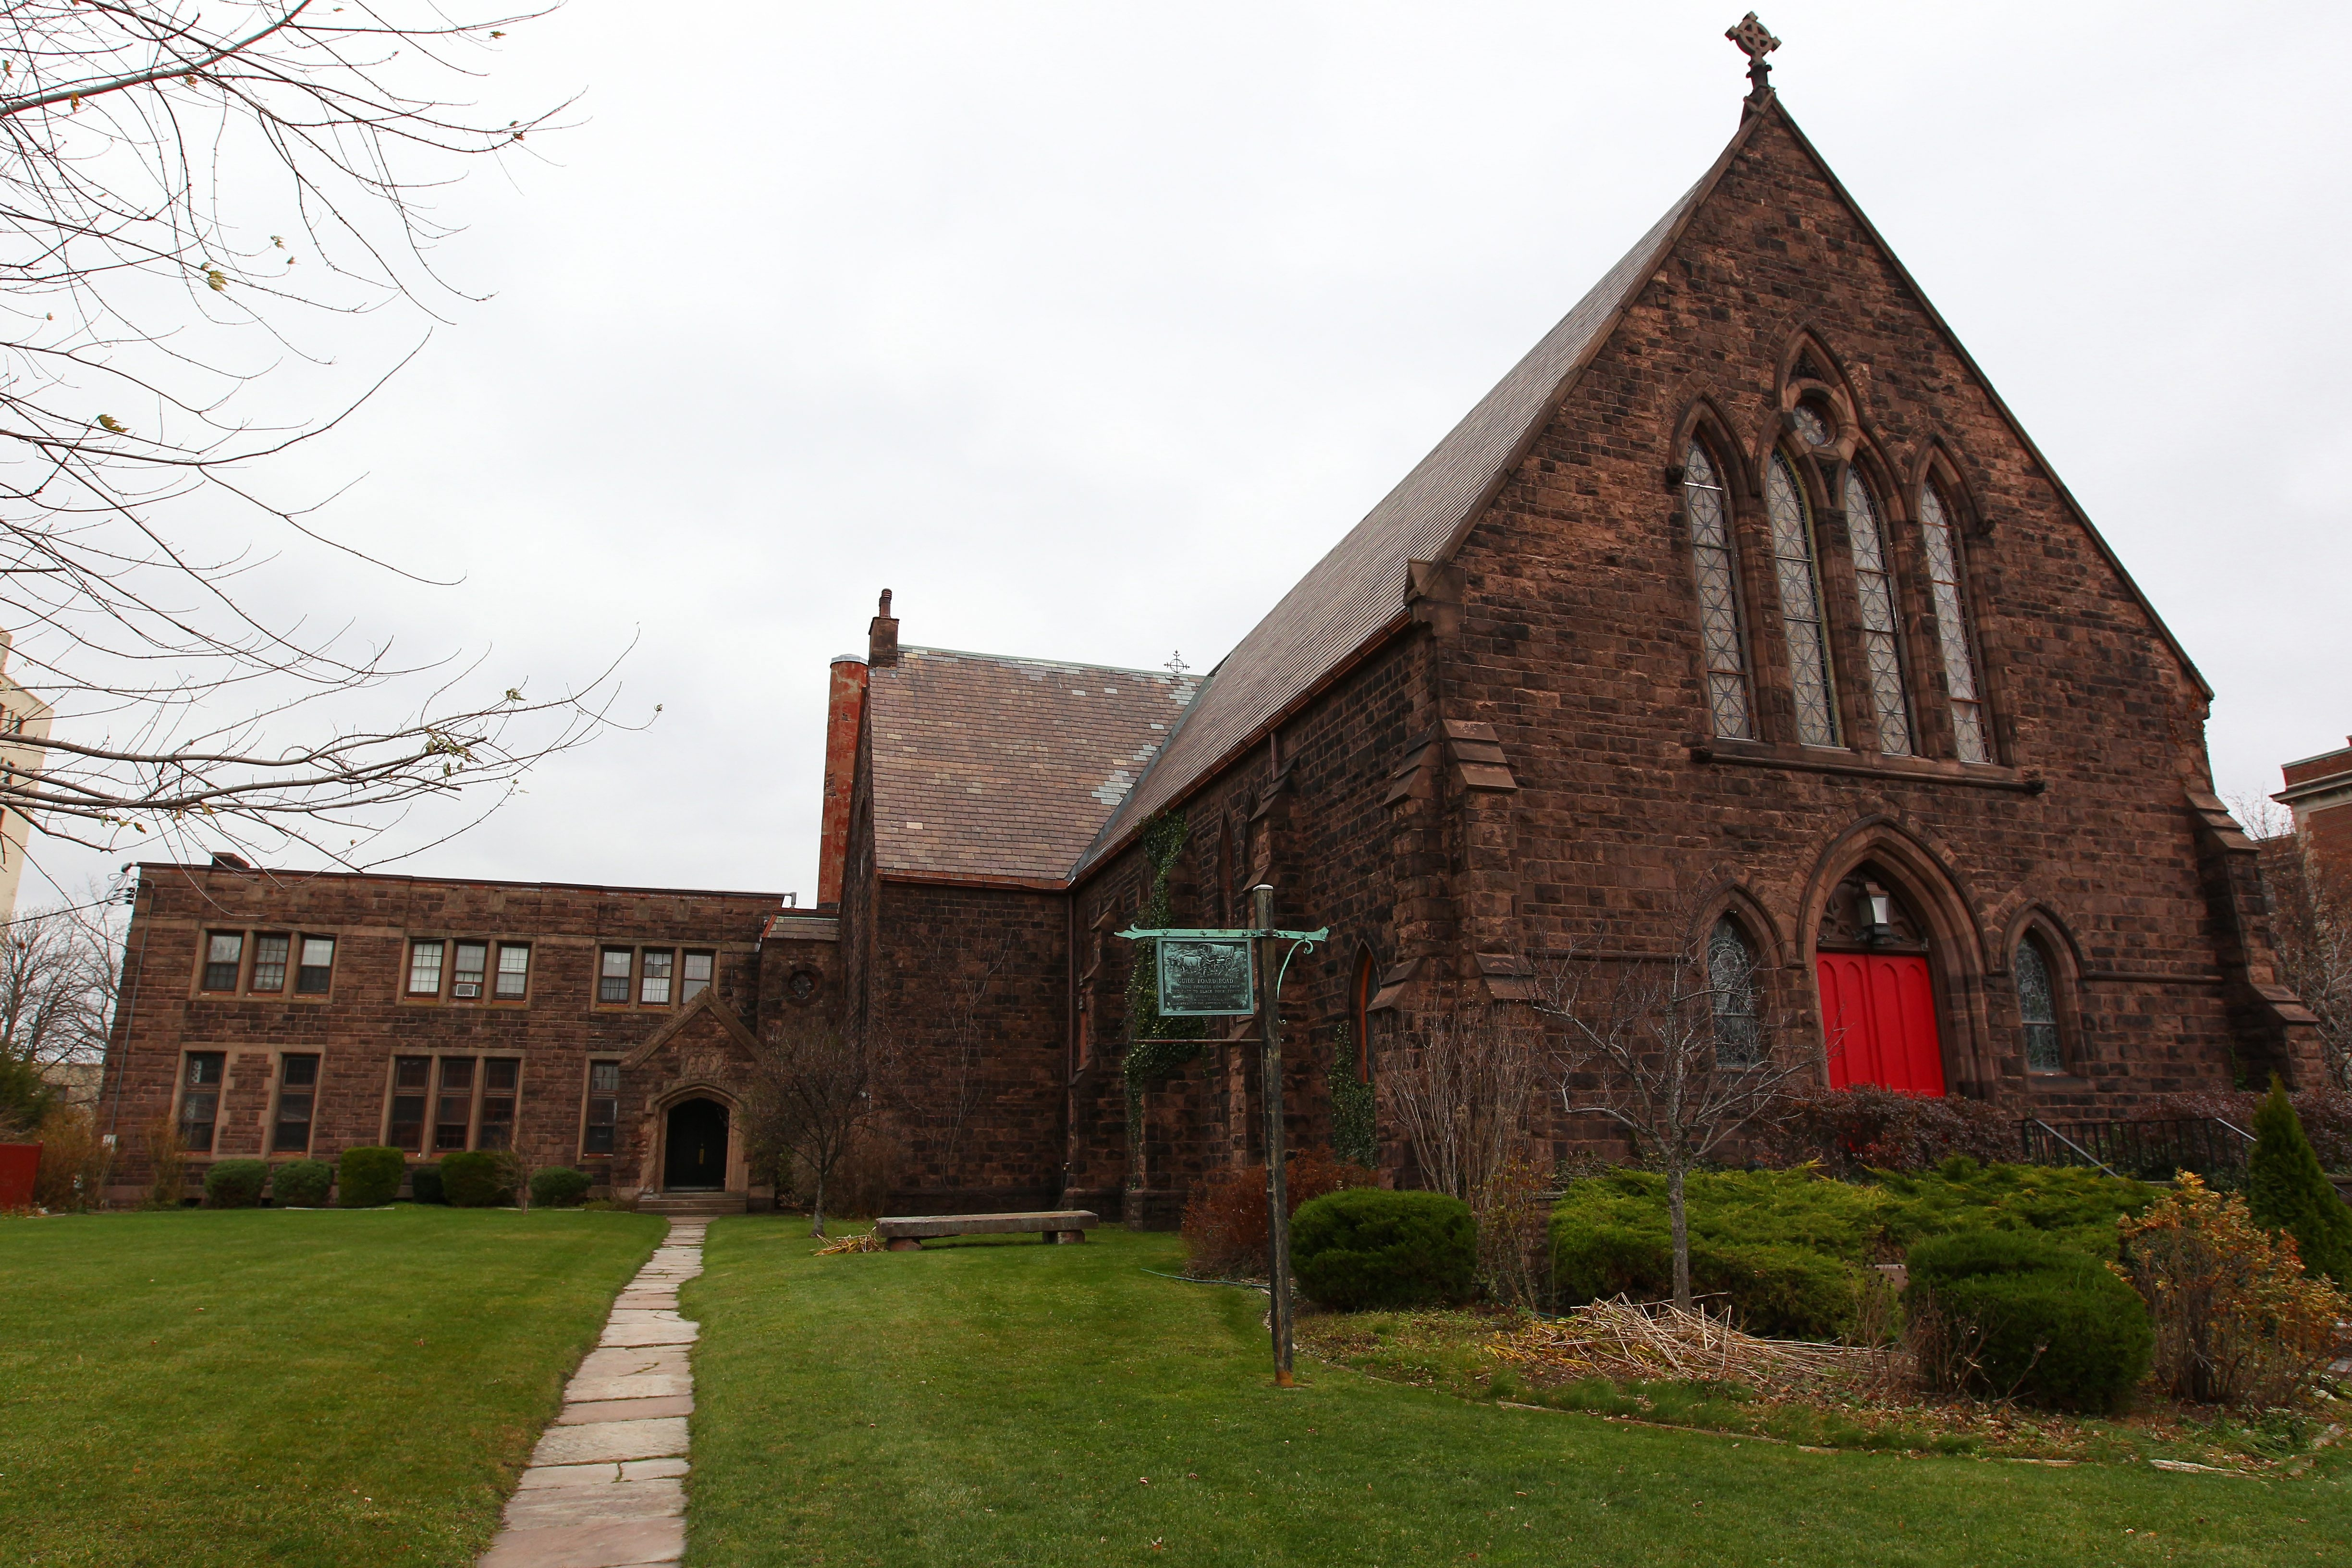 Church of the Ascension  Location: 16 Linwood Ave.  Age: 164 years old  Developer: Episcopal Church Home & Affiliates  Plan: Sanctuary to be preserved for community space while part of the campus is converted to 25 to 30 affordable senior apartments for those aged 55 and older, who live on fixed incomes